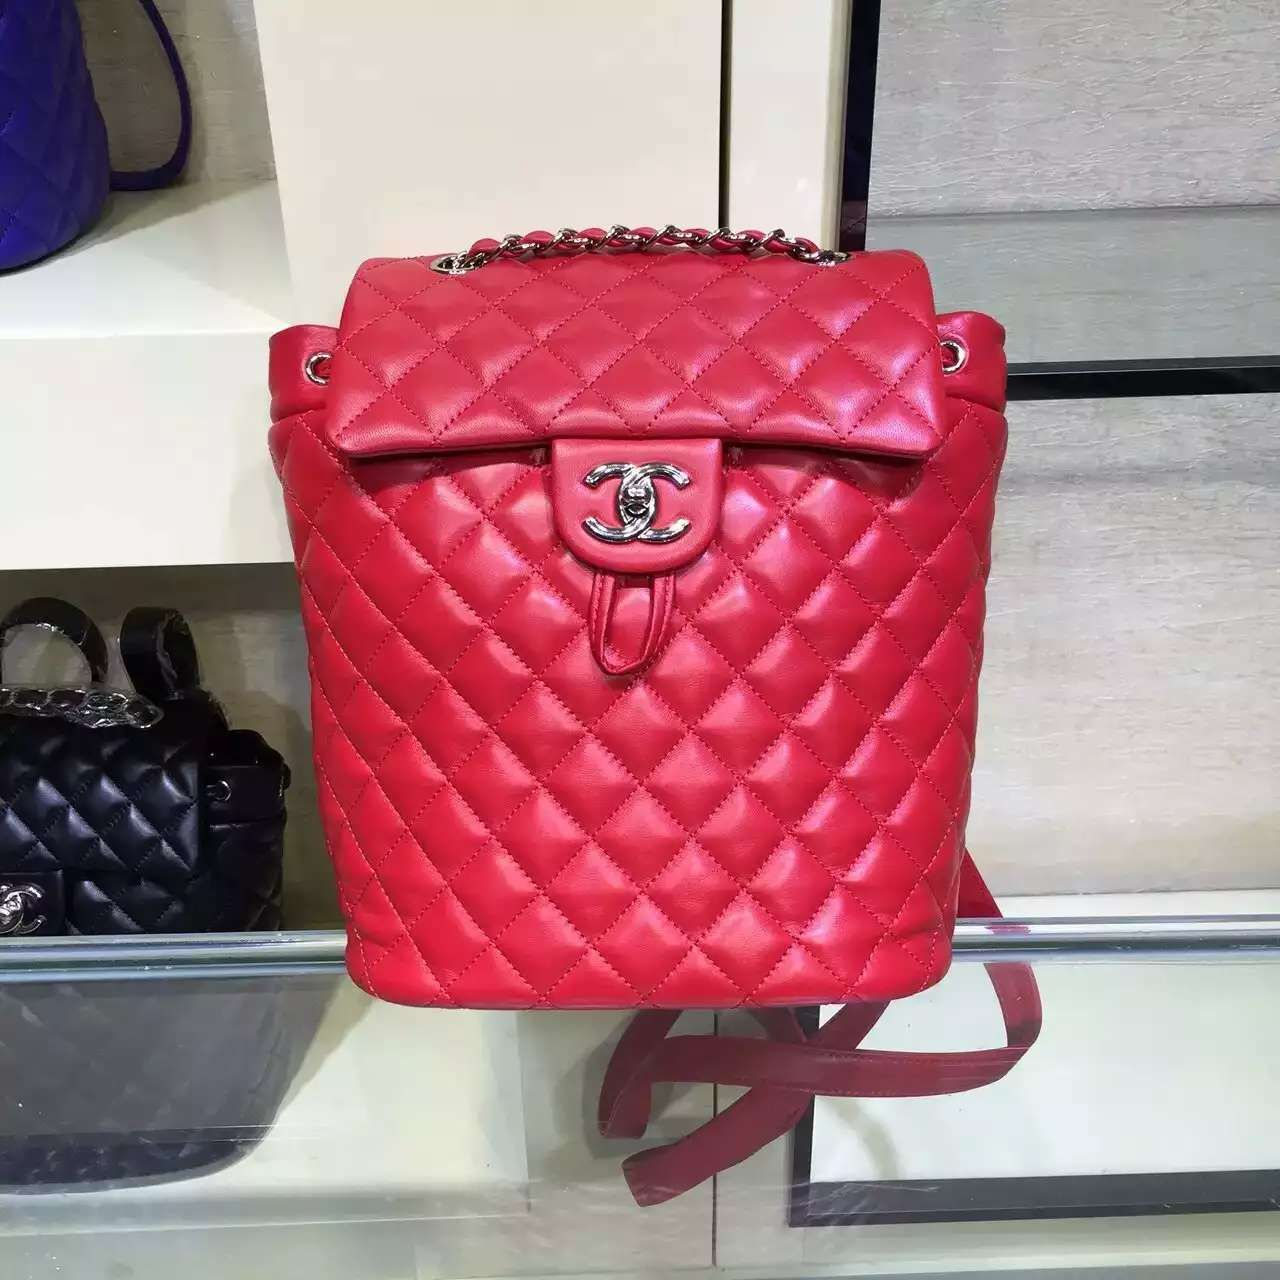 chanel Backpack, ID : 46475(FORSALE:a@yybags.com), chanel buy handbags online, chanel leather briefcase men, vintage chanel store, shop chanel purse, chanel trendy handbags, chanel handbag shops, chanel wallets for women, find chanel store, chanal handbags, chanel women bag, chanel mens briefcase bag, chanel lightweight backpack #chanelBackpack #chanel #chanel #leather #laptop #backpack